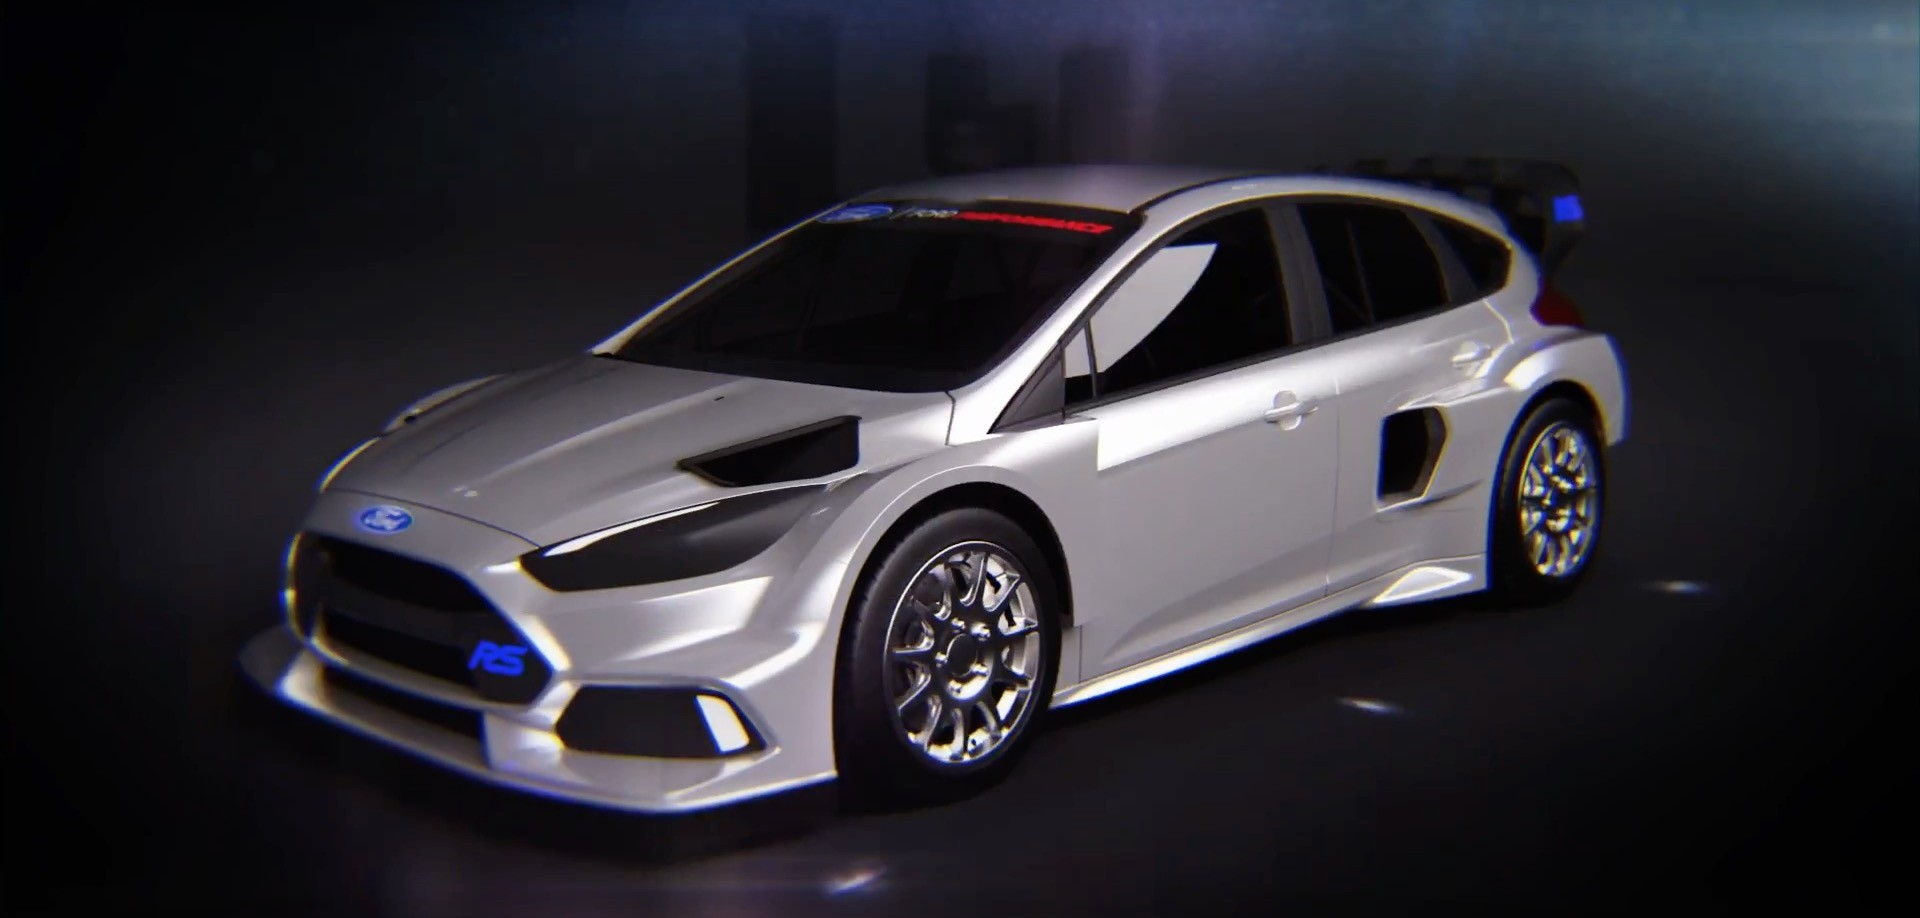 Ford Fiesta Rx43 >> Gymkhana 8 Doesn't Live Up to Expectations, Ford Focus RS RX Teased - autoevolution